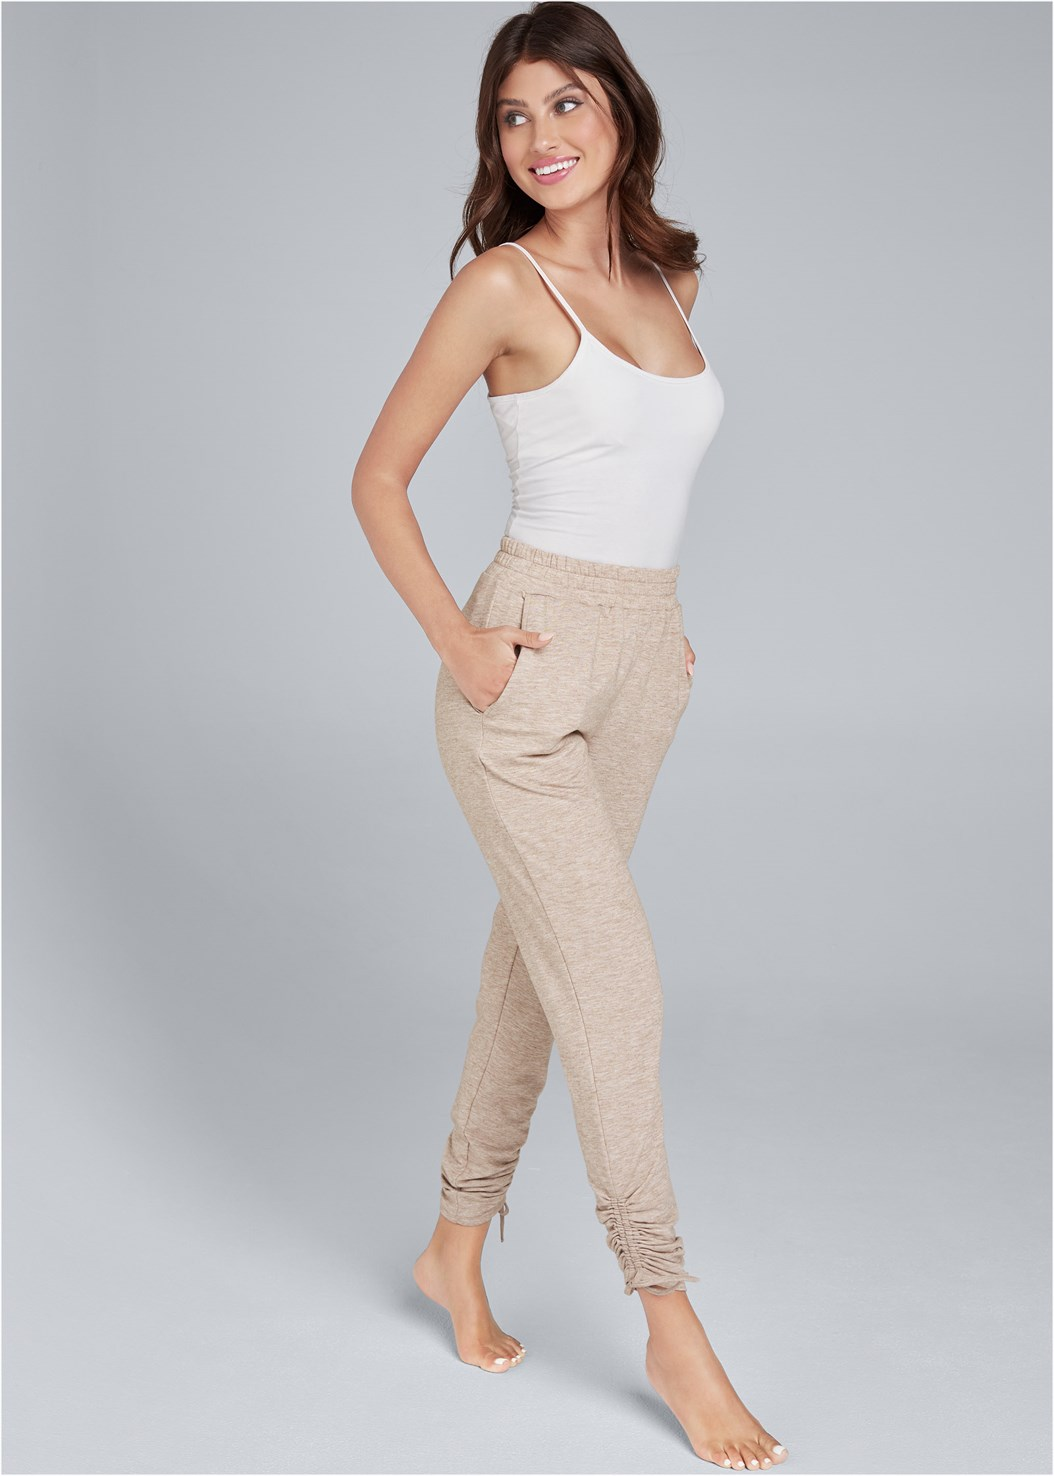 Cozy Drawstring Tie Joggers,Basic Cami Two Pack,Seamless High Neck Top